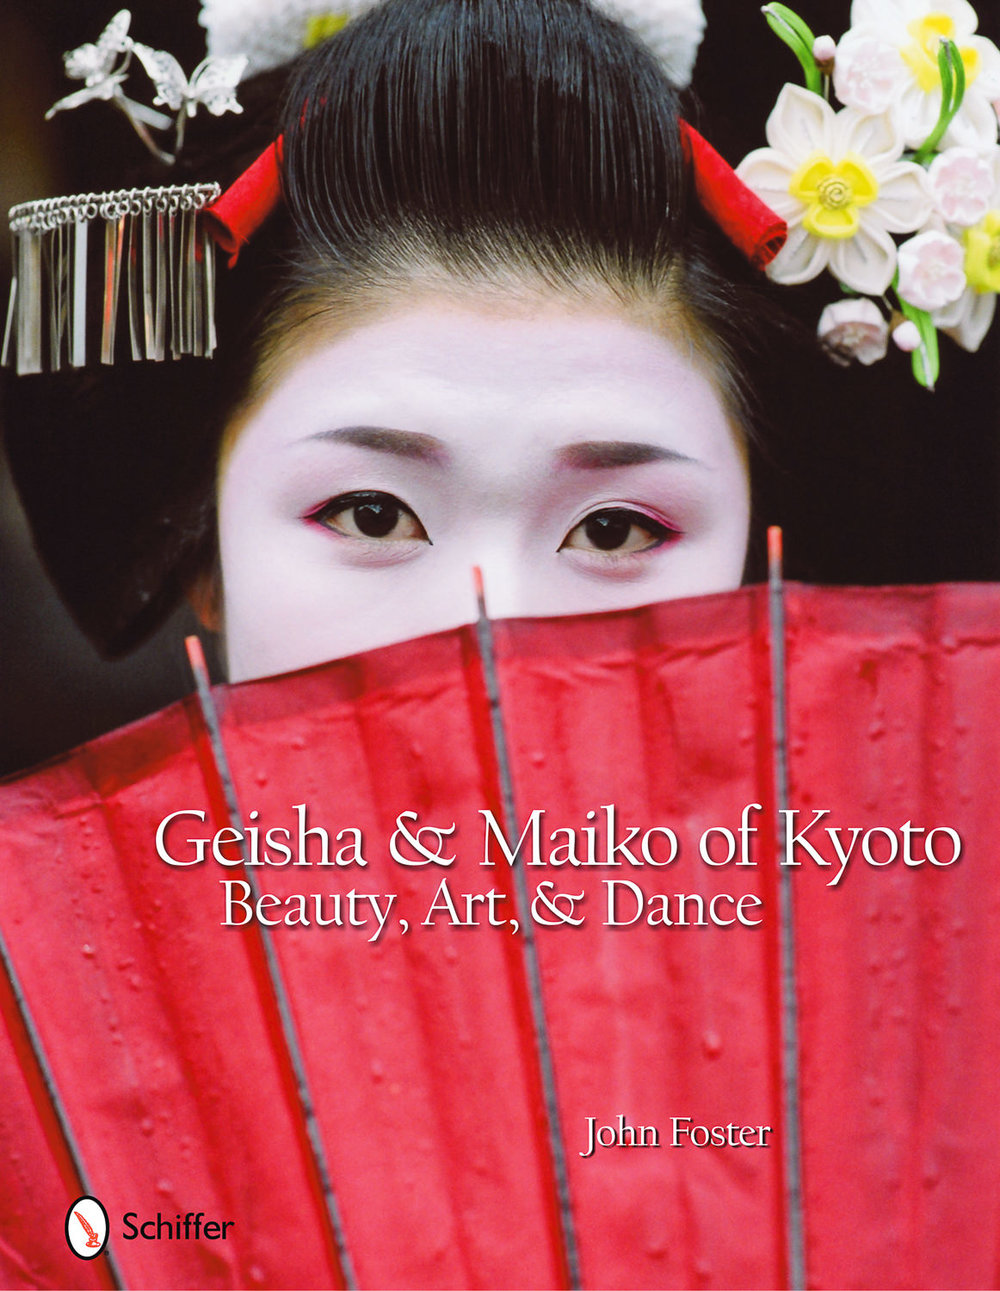 Geisha-Maiko-Kyoto-Beauty-Art-Dance-book.jpg